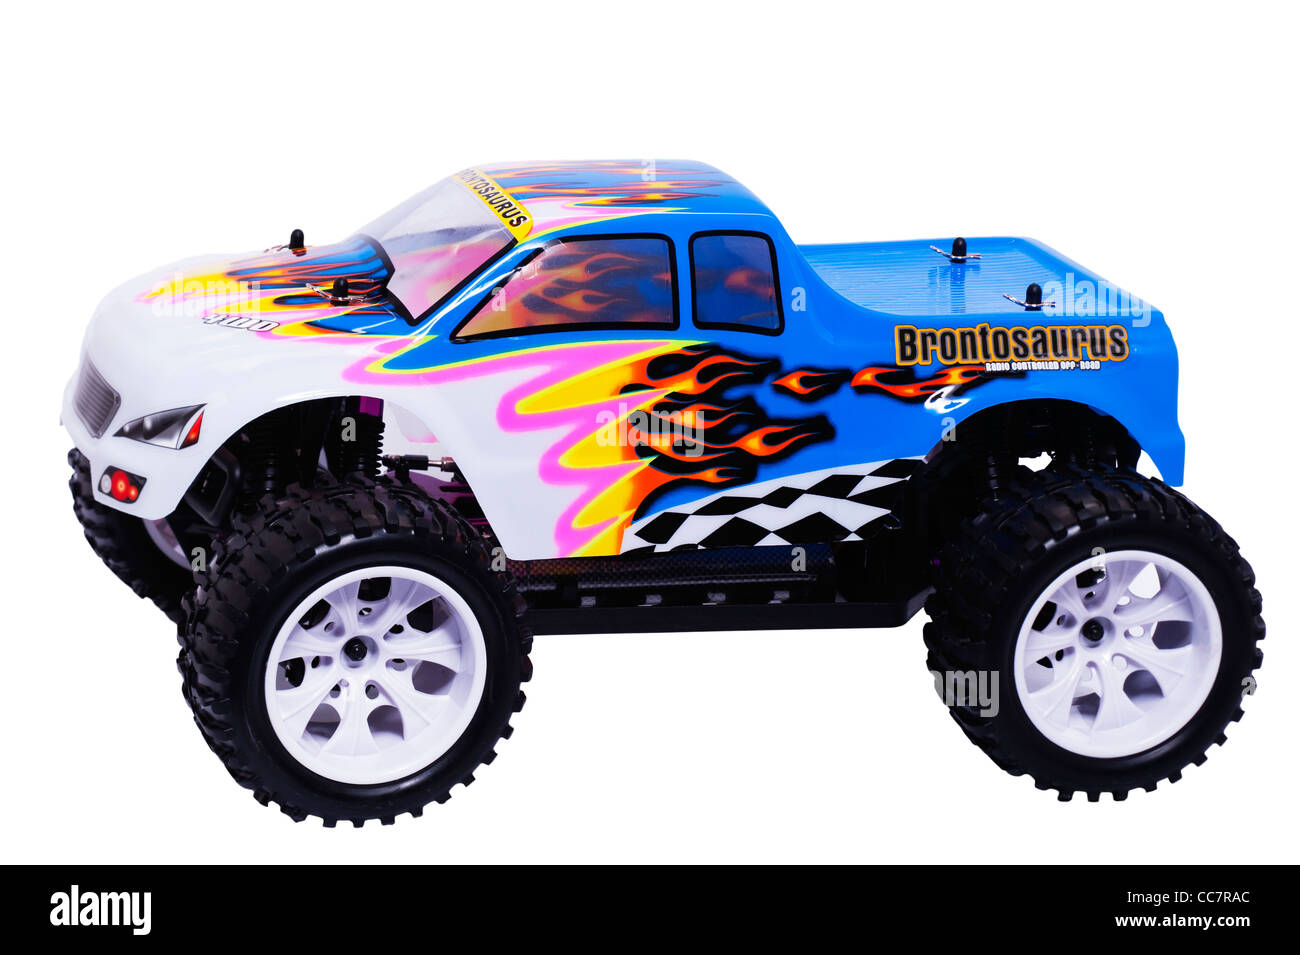 A radio controlled Brontosaurus off road buggy car on a white background - Stock Image